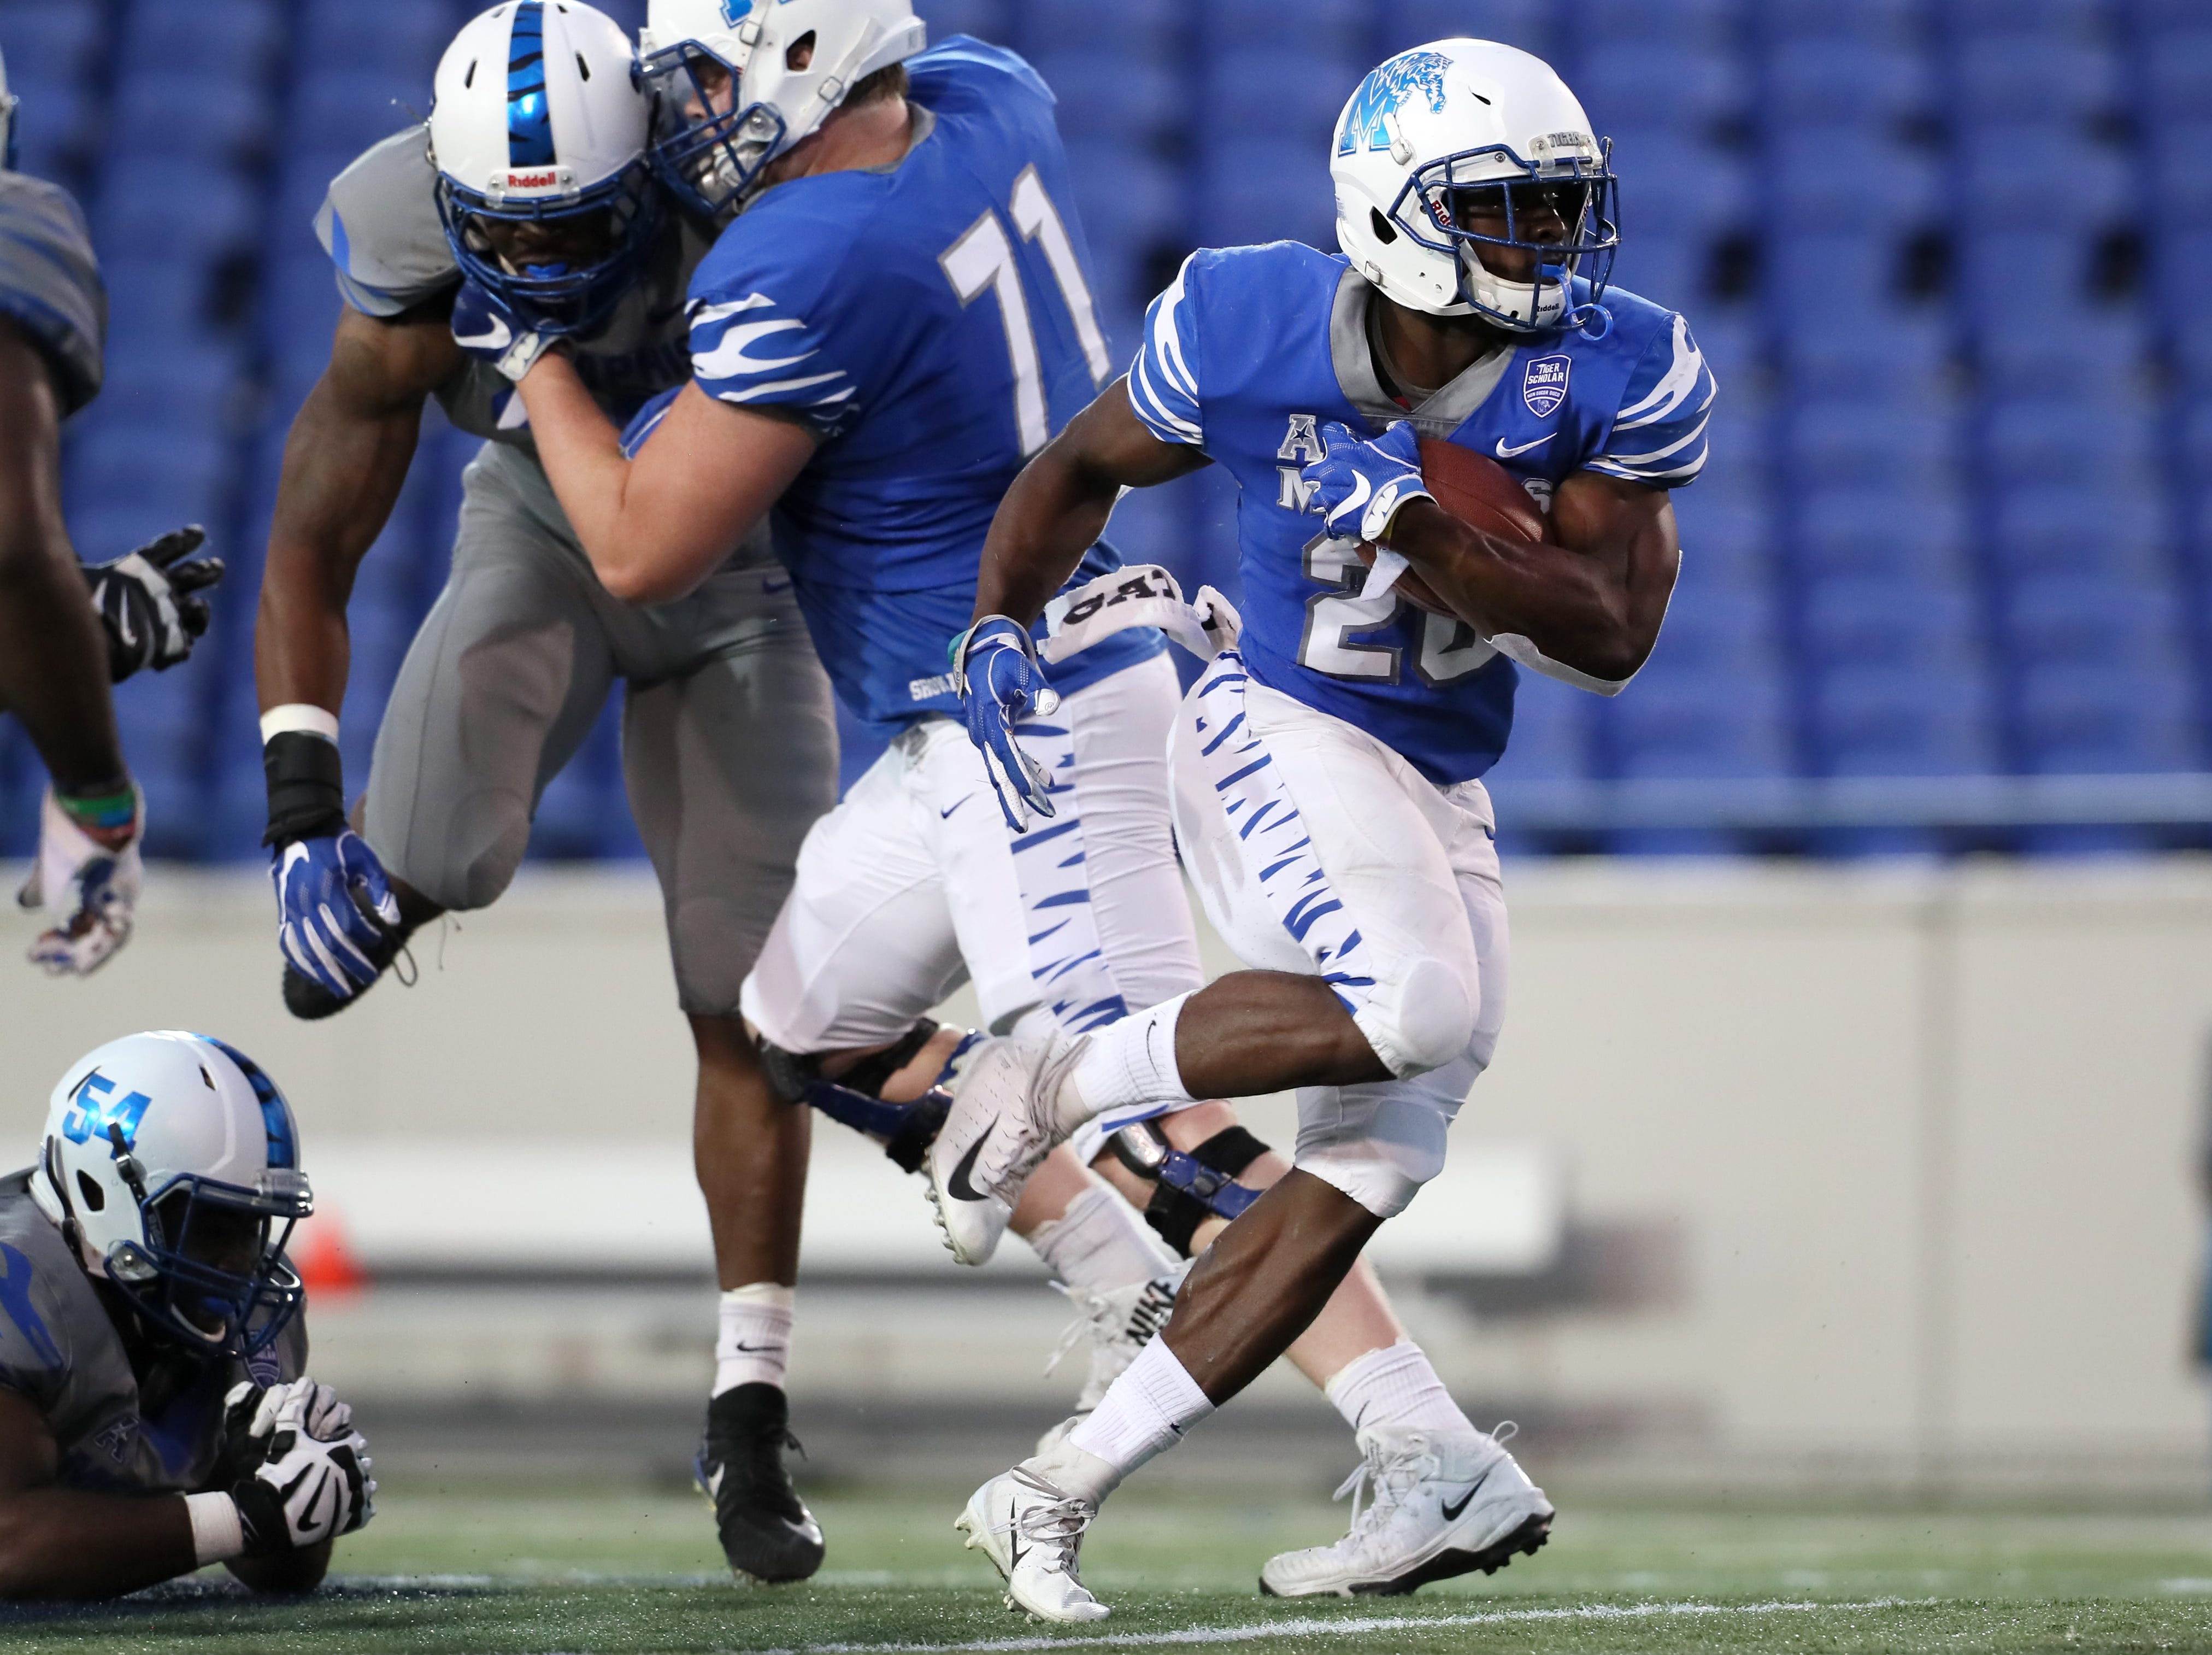 Memphis Tigers running back Marquavius Weaver sprints out of the backfield during their Friday Night Stripes spring game at Liberty Bowl Memorial Stadium on Friday, April 12, 2019.